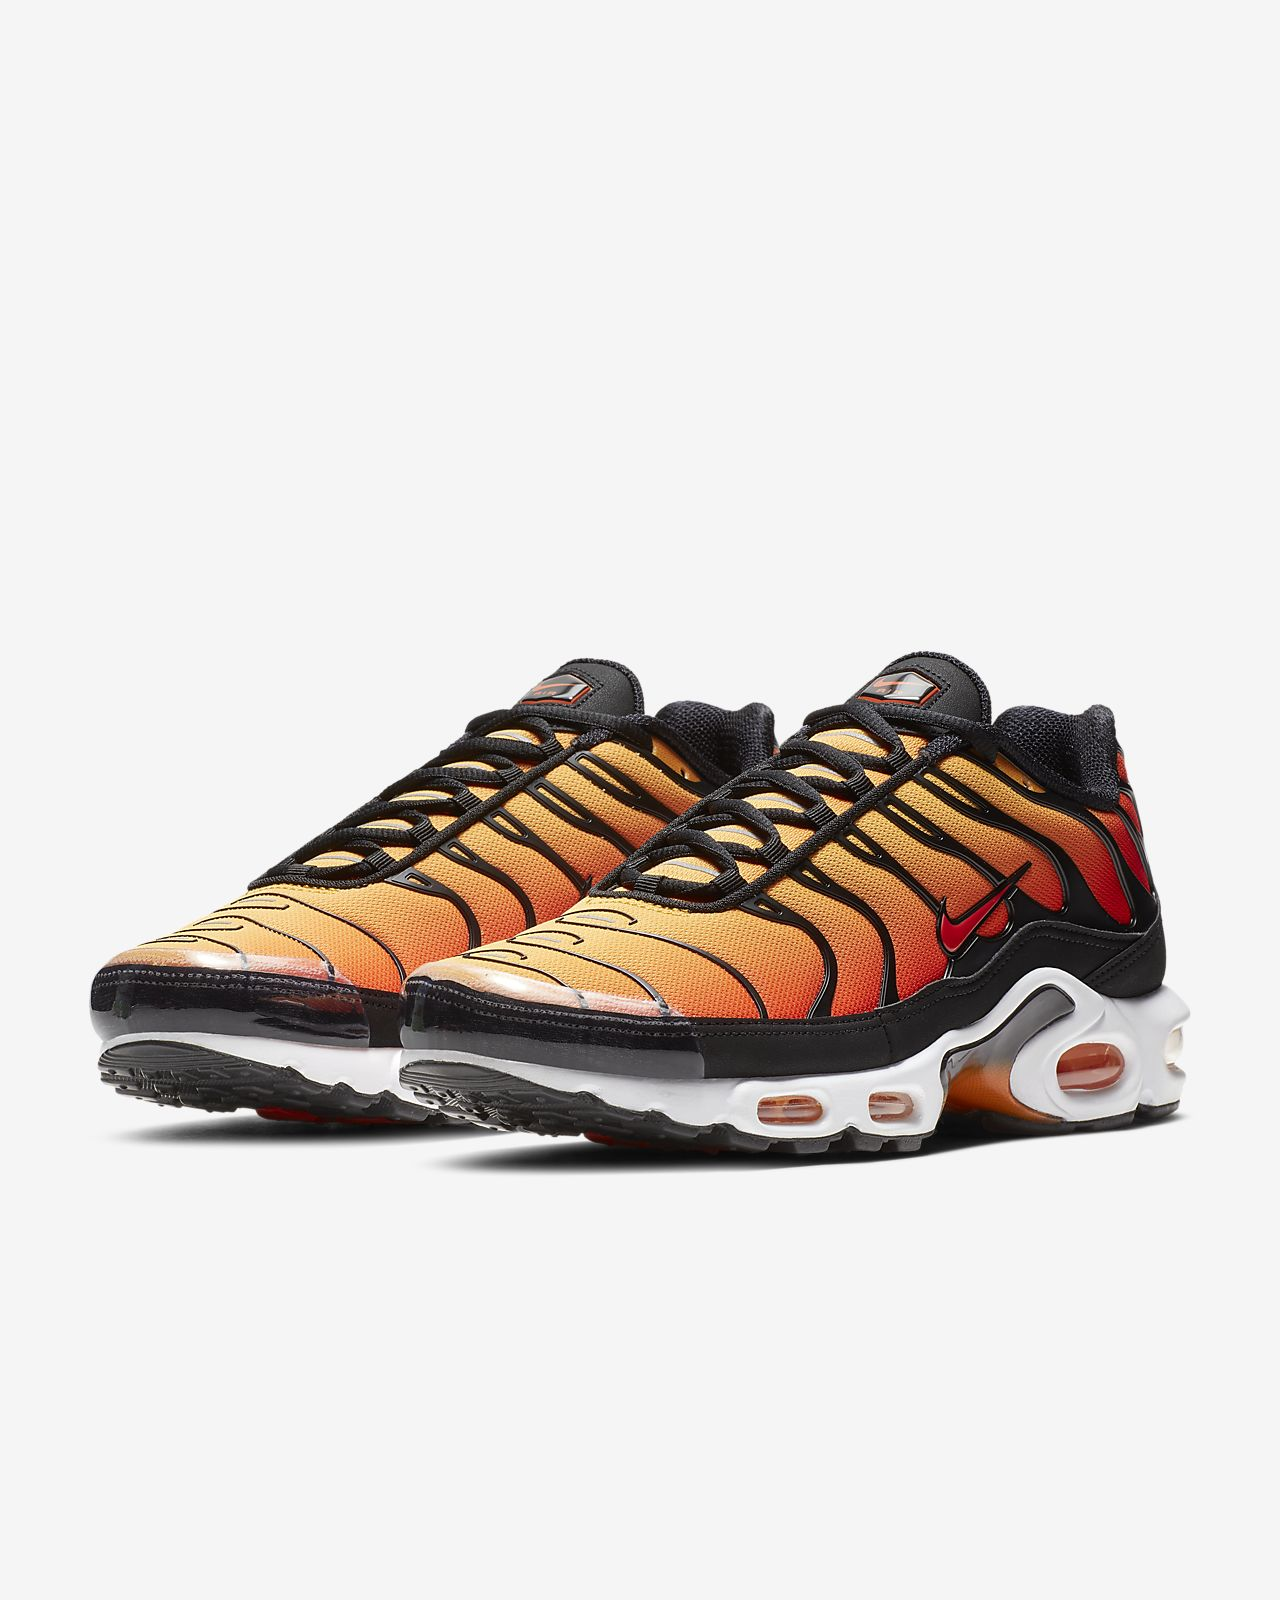 new style 18b82 c408f ... Nike Air Max Plus OG Schuh